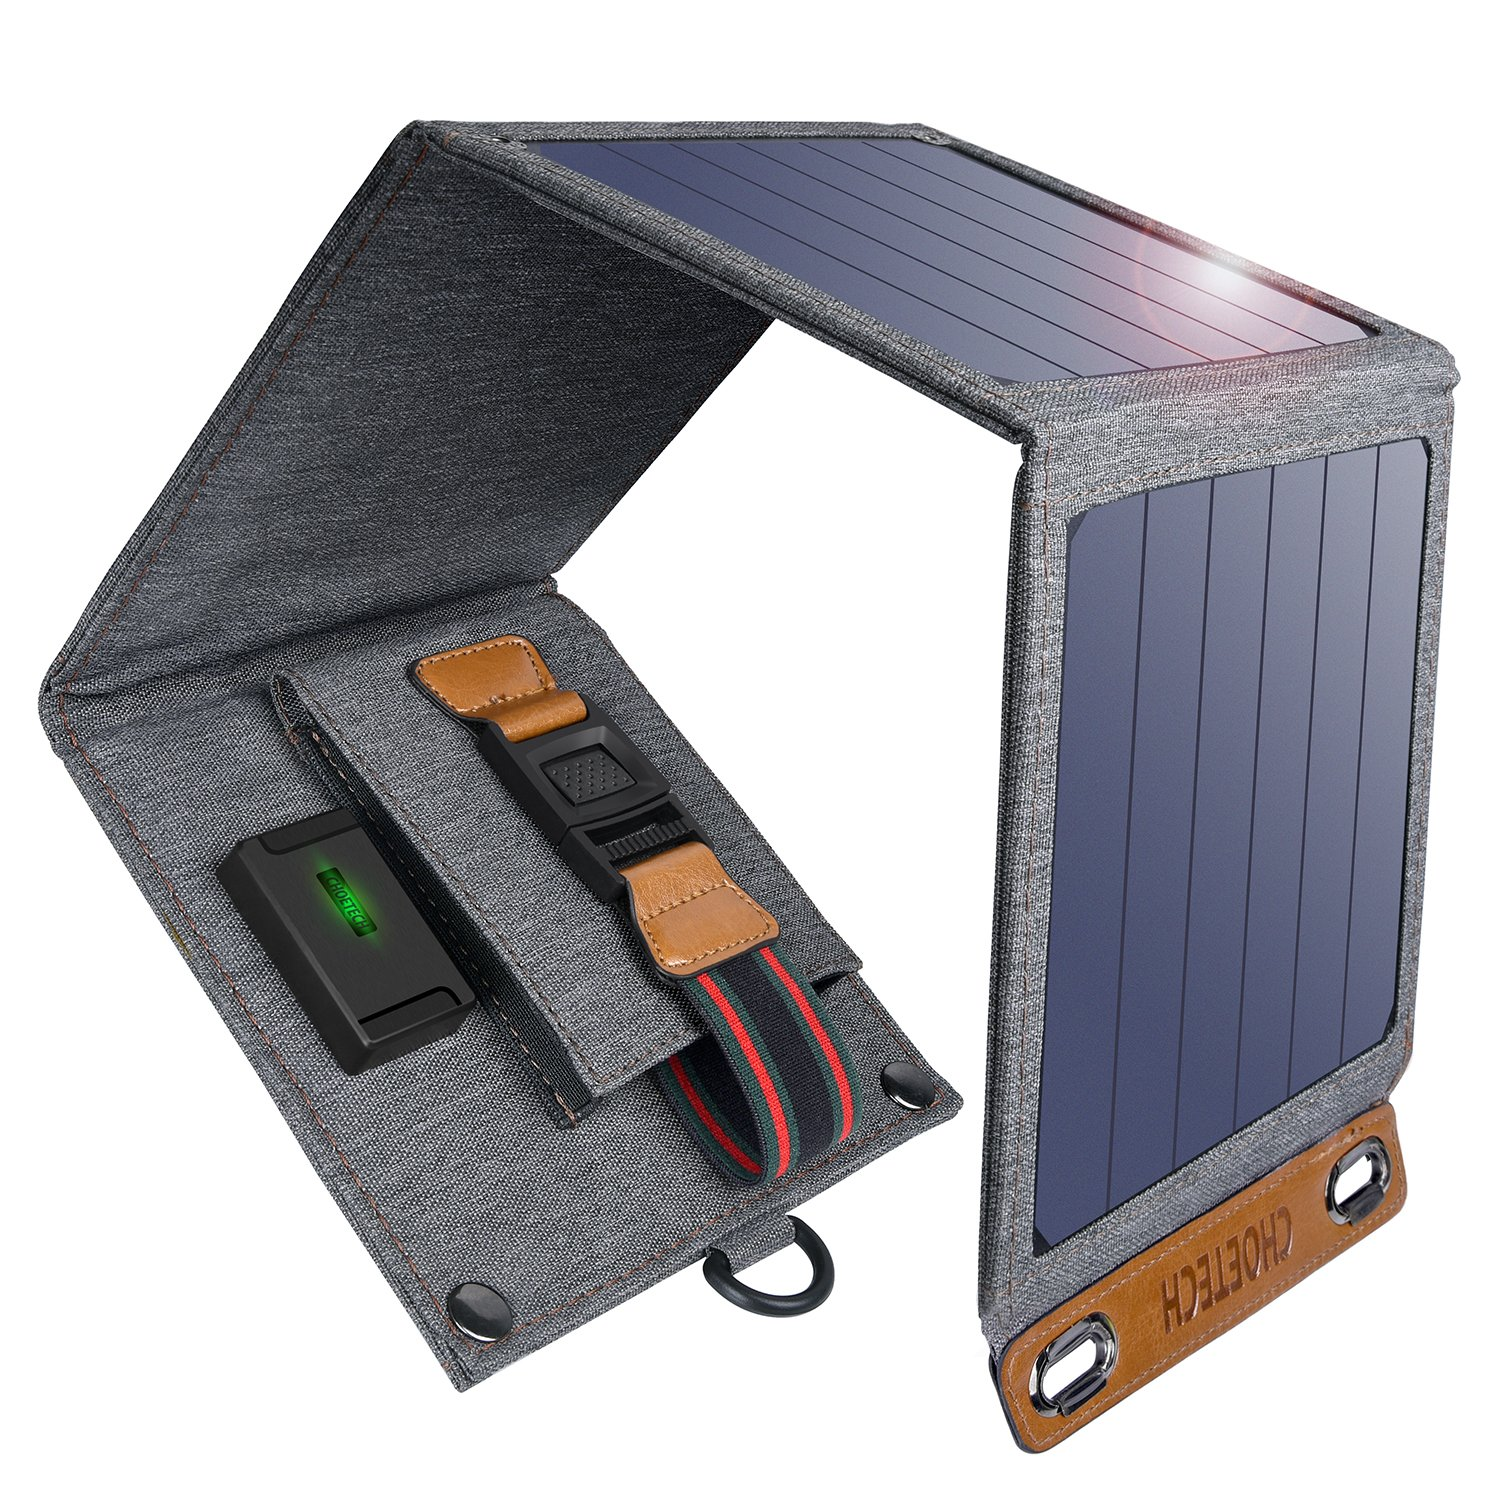 CHOETECH Solar Charger, 14W Solar Panel Phone Charger Waterproof Foldable Camping Charger Compatible iPhone Xs Max/XS/X/8, Galaxy S10/S10+, Other Smartphones, iPad, Camera, Bluetooth Speaker and More by CHOETECH